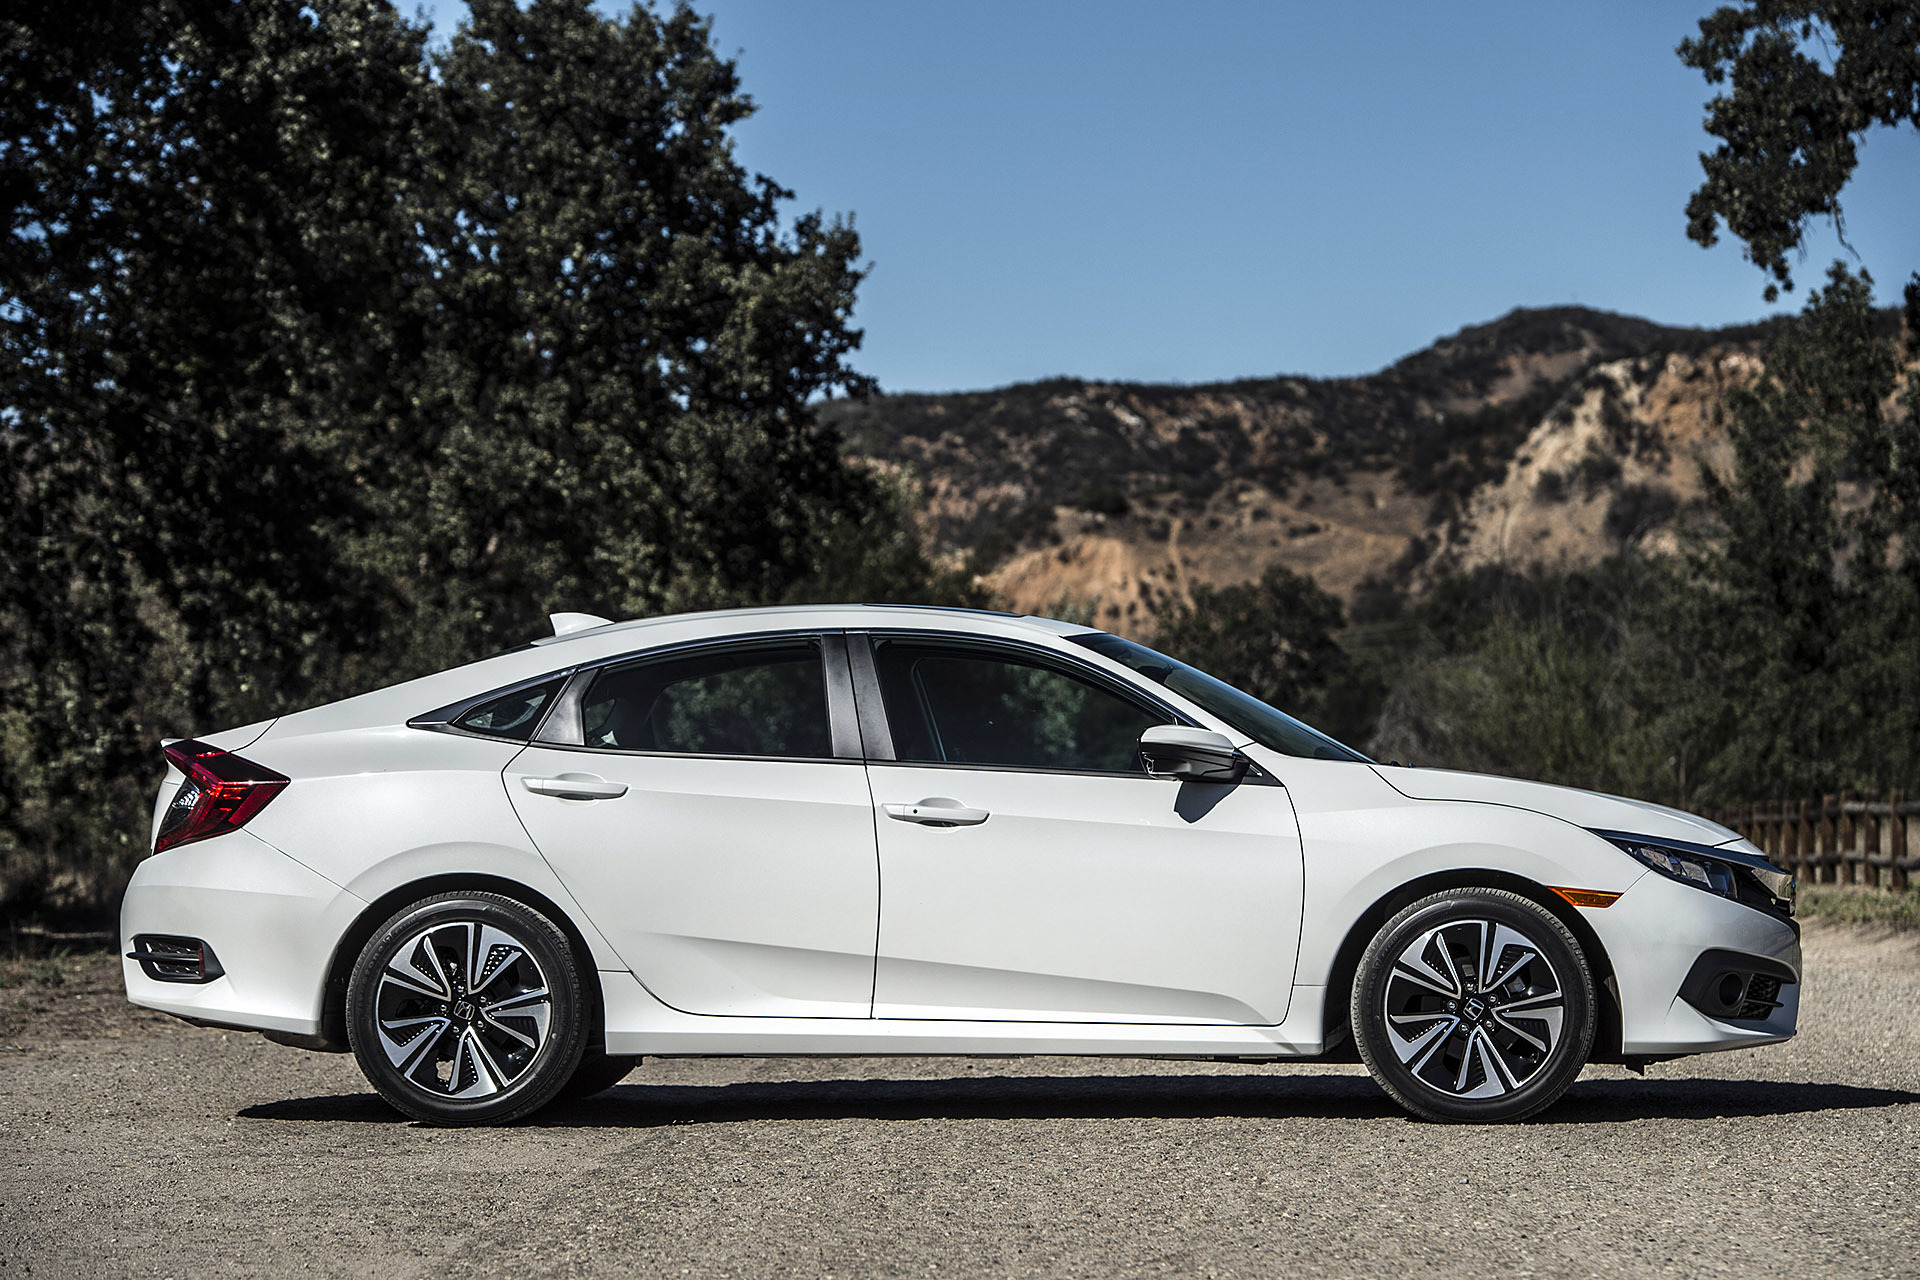 New 2016 Honda Civic Two Engine Types 5 - Muscle Cars Zone!